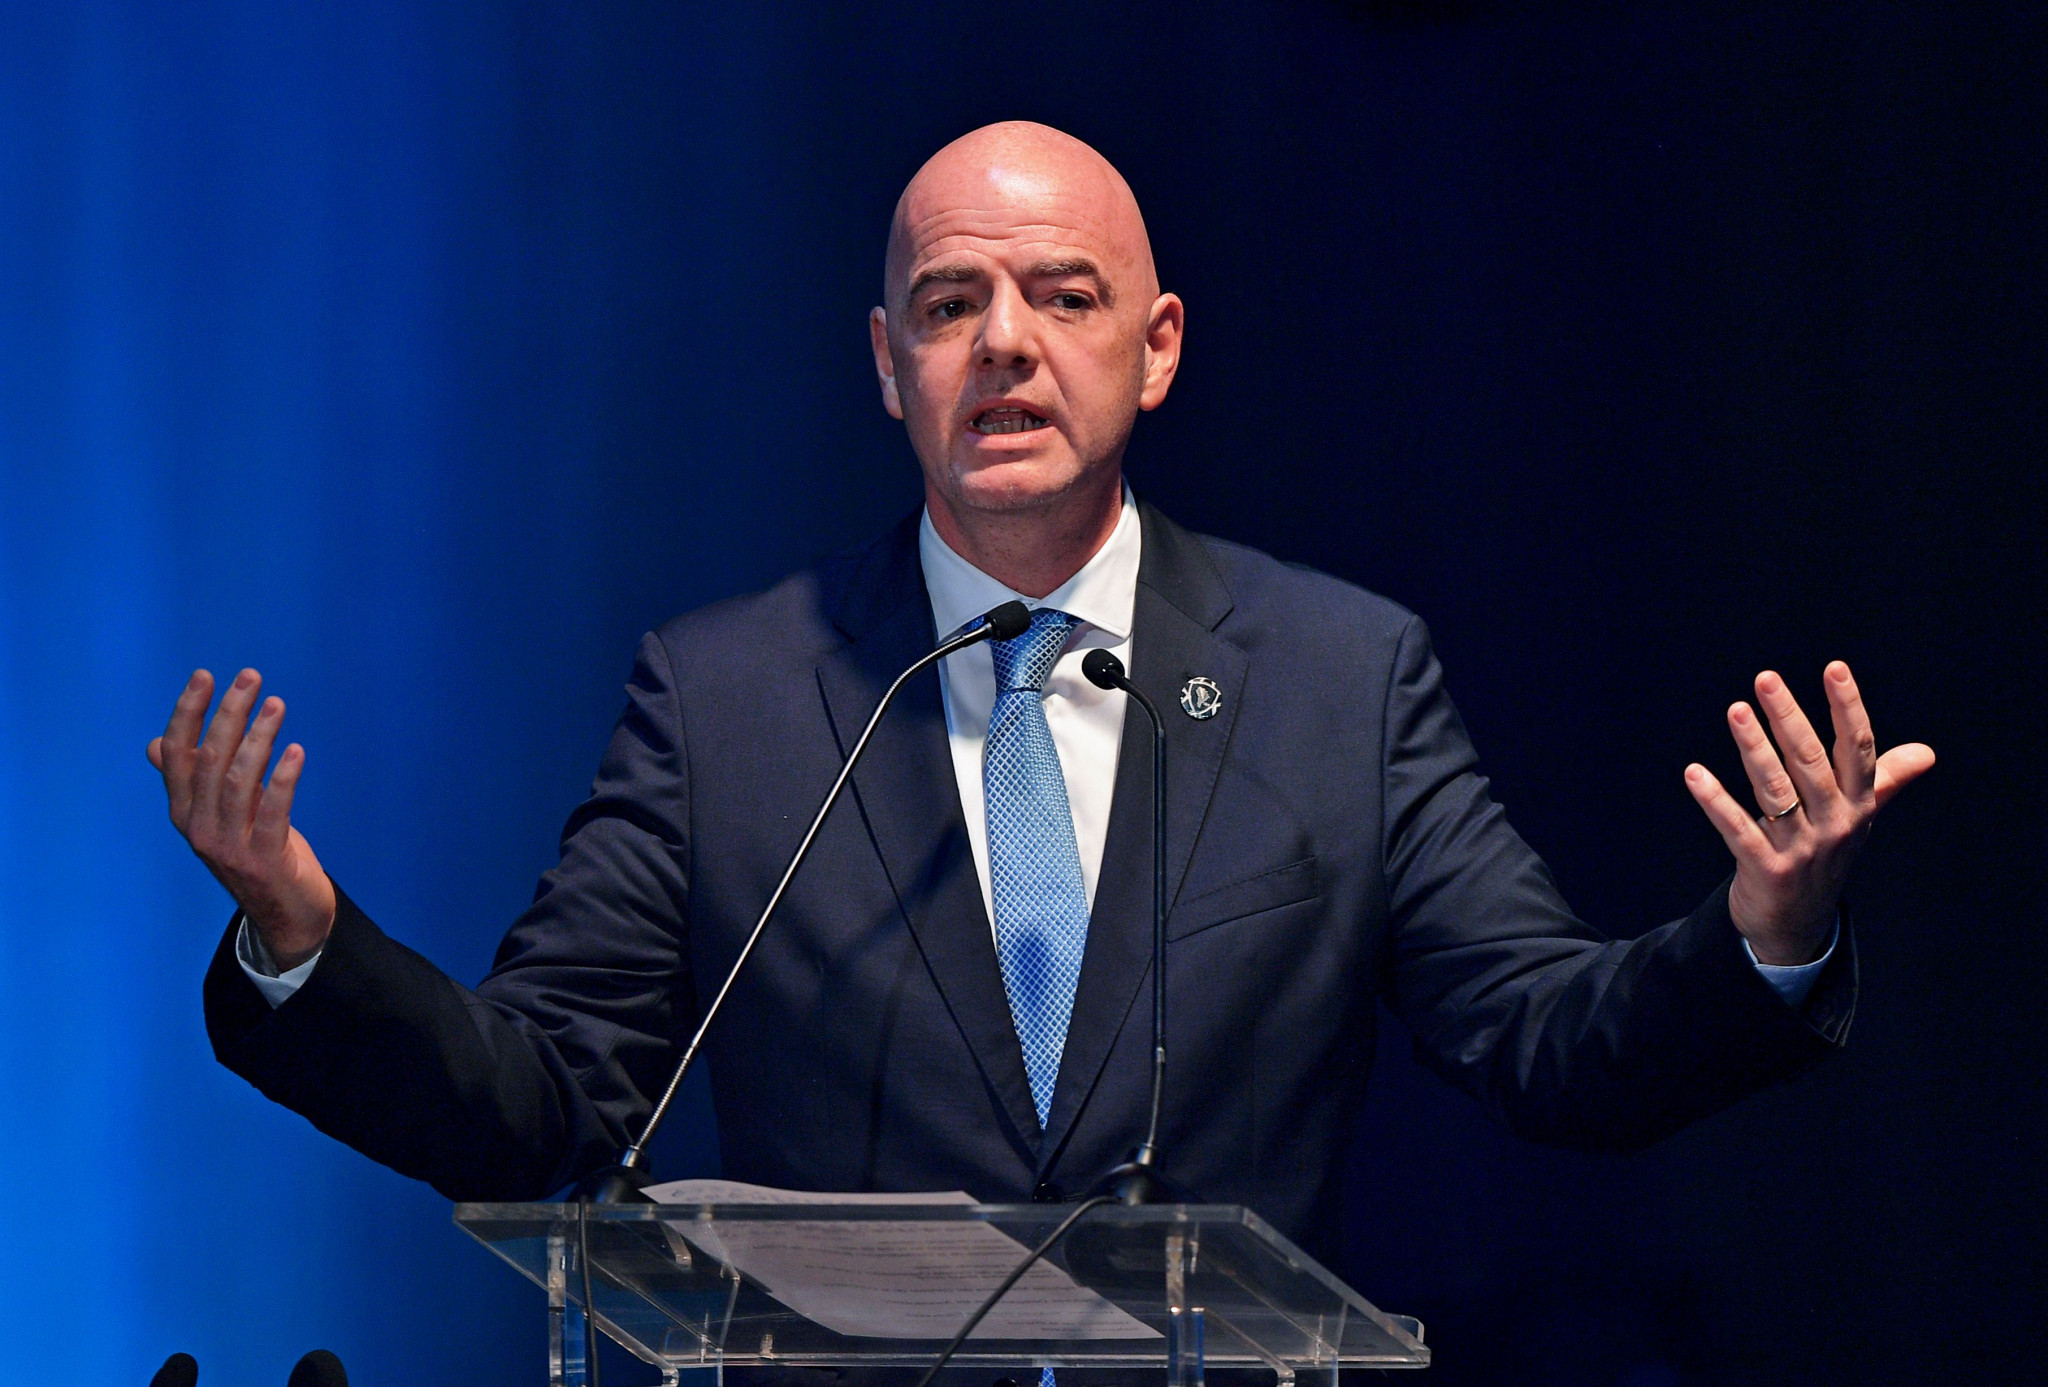 FIFA President Infantino vows to continue fight against racism after Amiens captain Gouano receives reported abuse